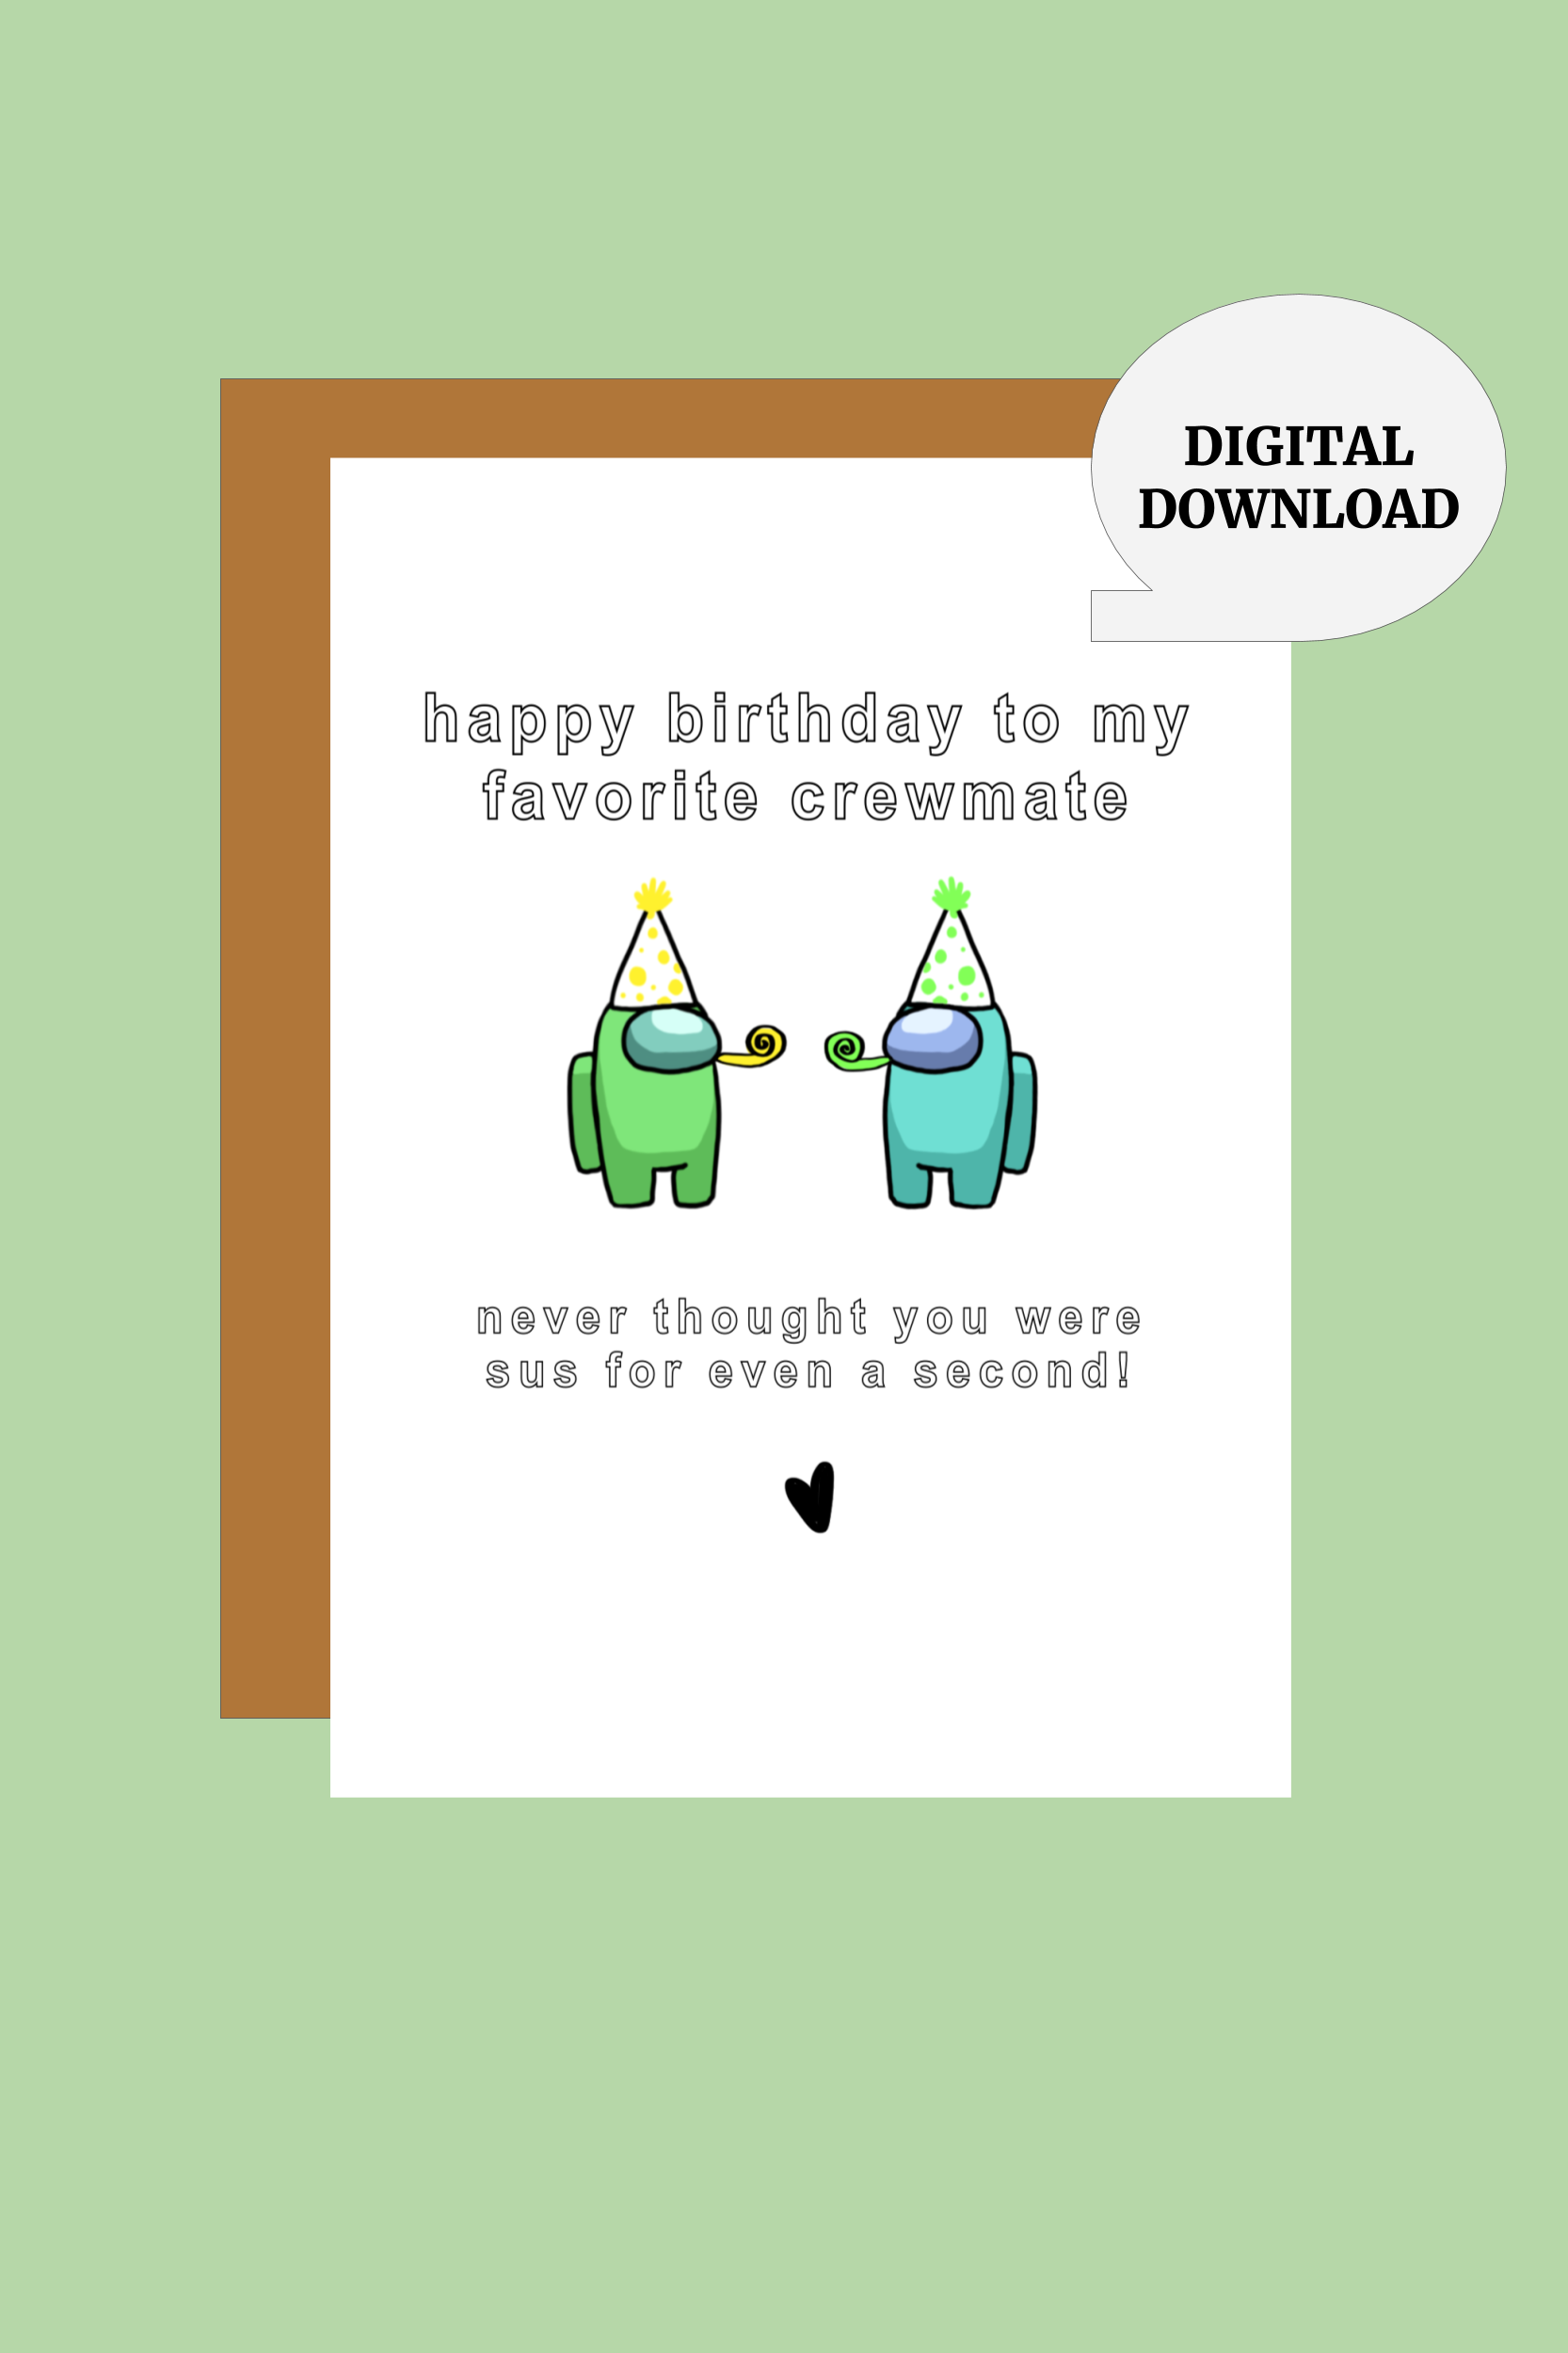 Among Us Birthday Card Printable Instant Digital Download Etsy In 2021 Birthday Card Printable Birthday Cards For Friends Birthday Cards For Brother